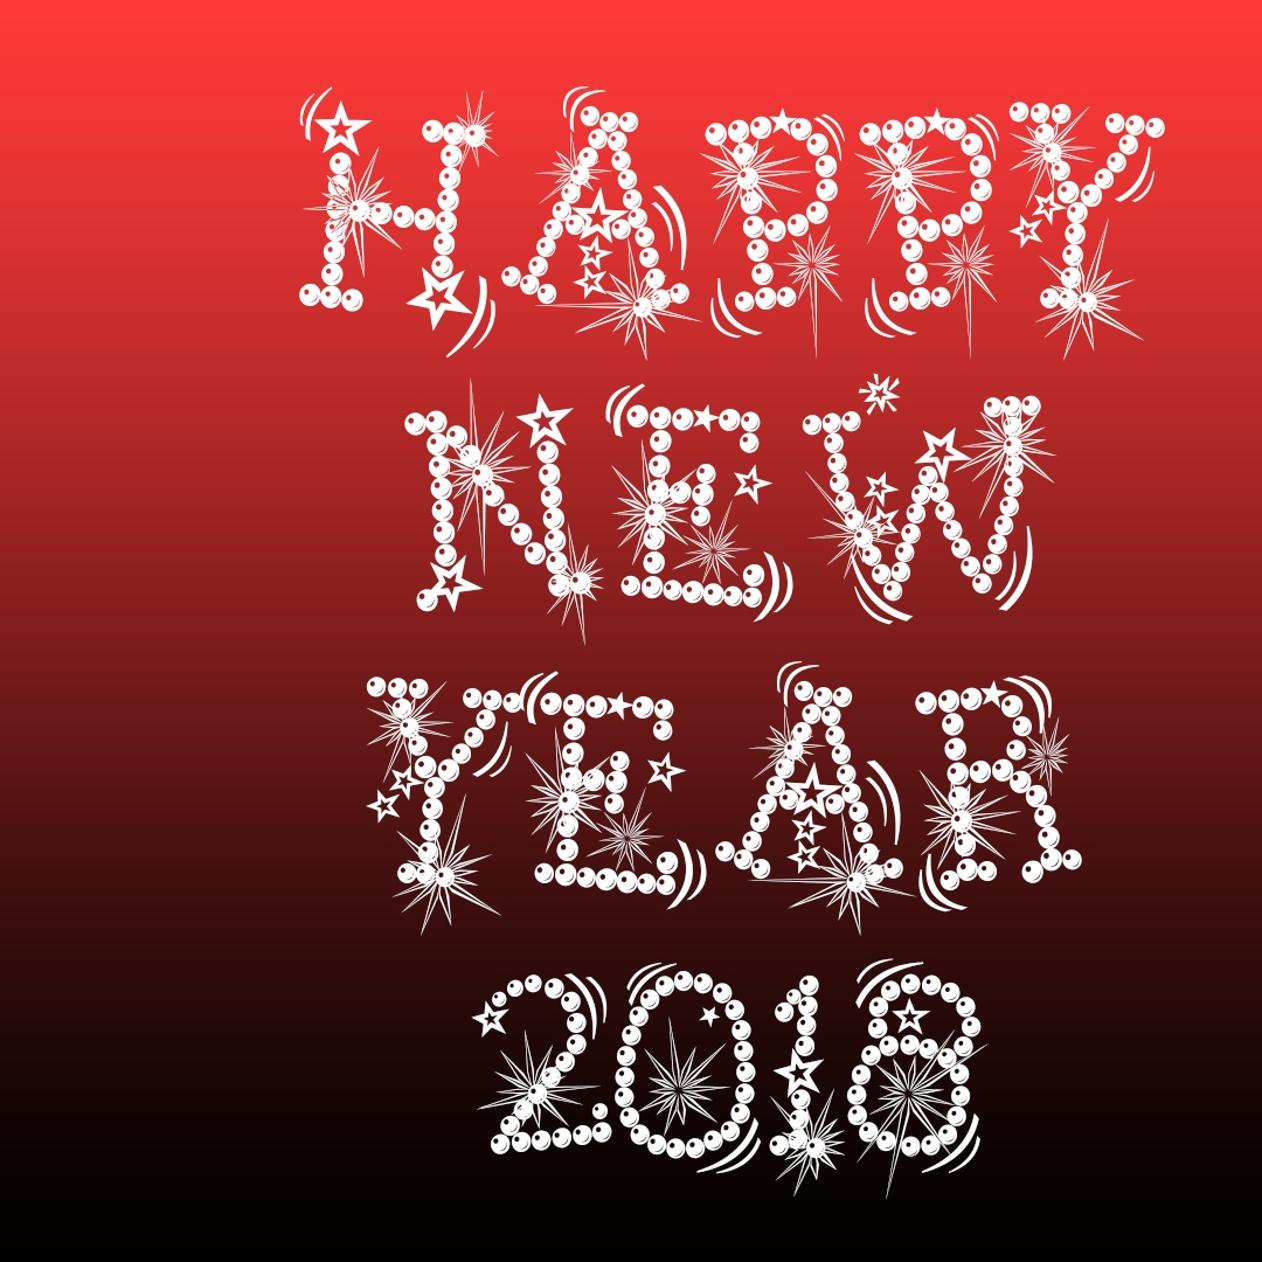 happy new year 2018 red and dark background wallpaper download 1262x1262